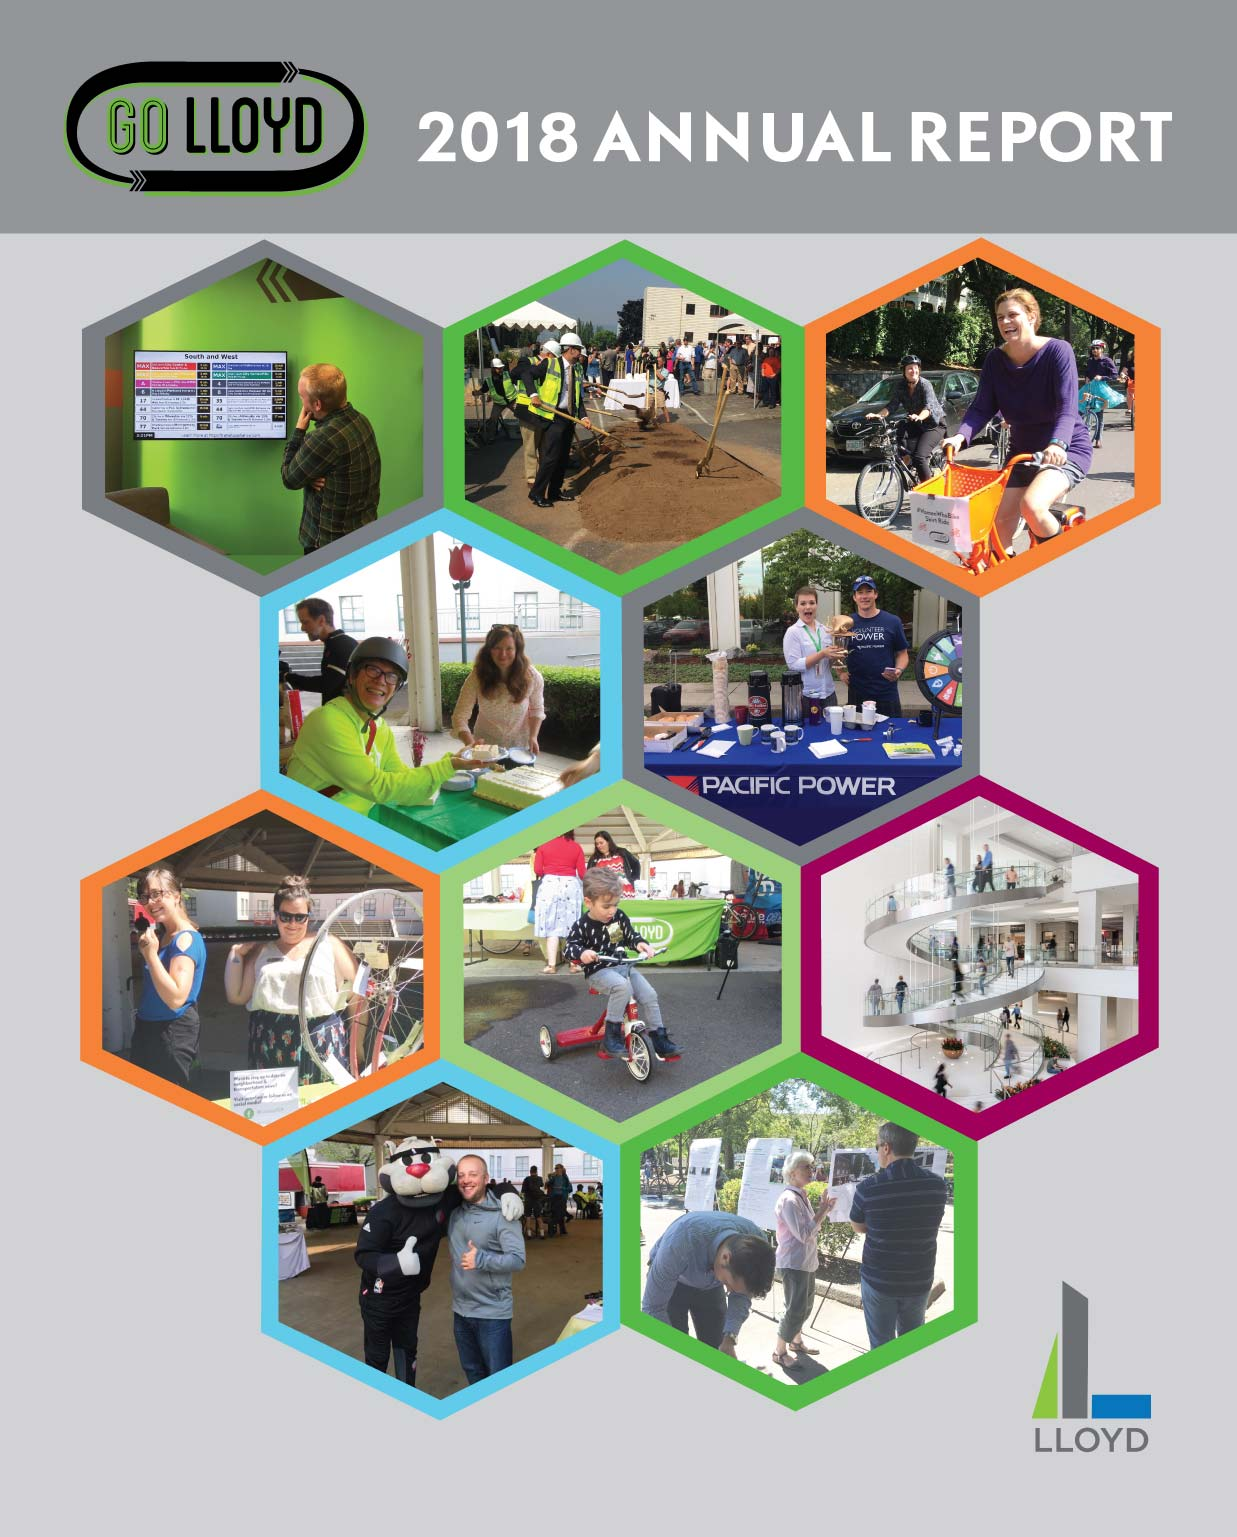 2018 Annual Report_Page 1 (cover).jpg